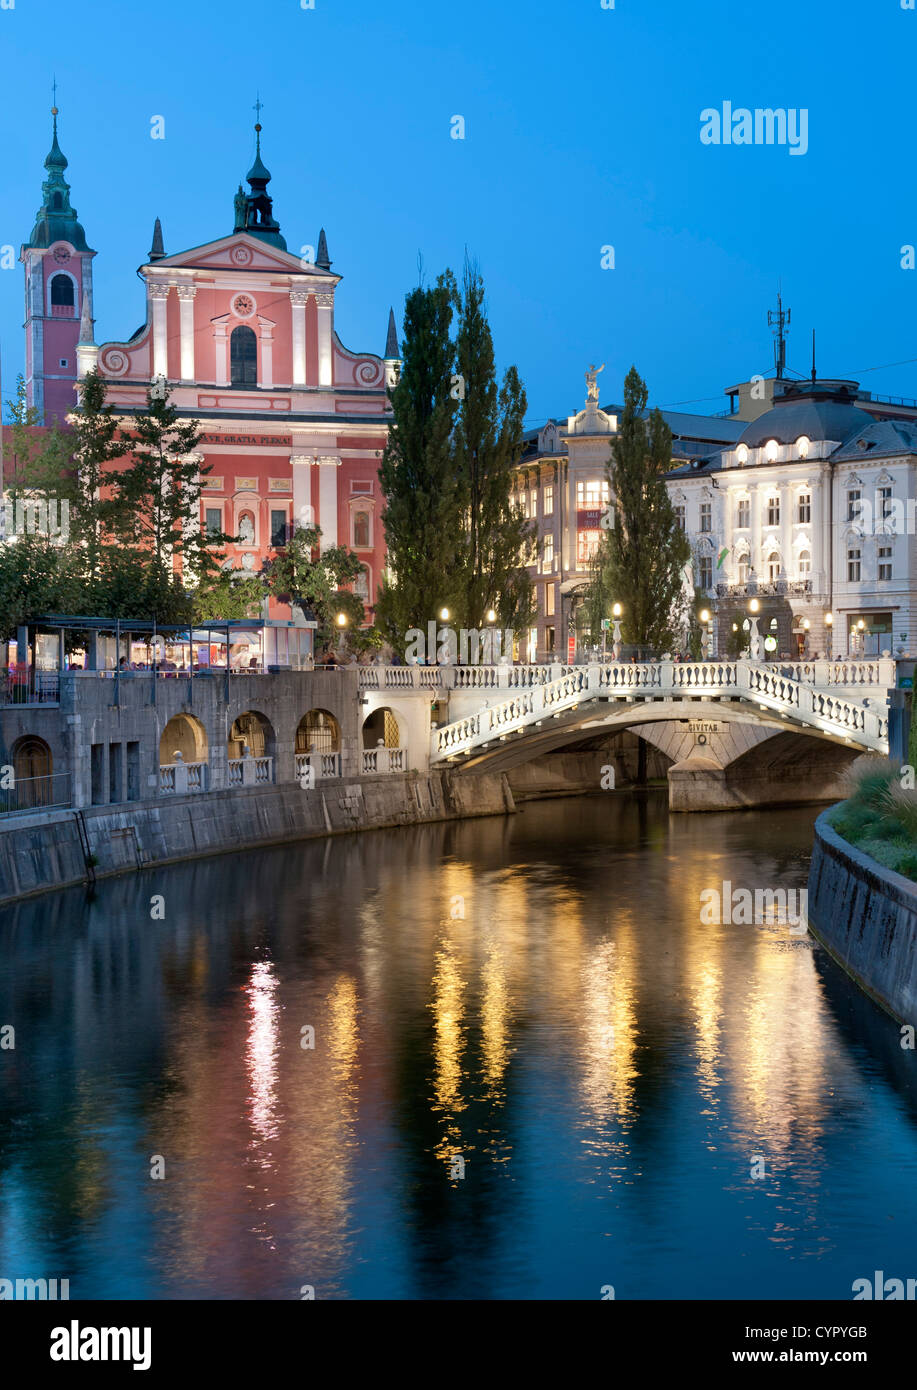 Franciscan Church of the Annunciation and the Triple Bridge over the Ljubljanica River in Ljubljana, the capital - Stock Image